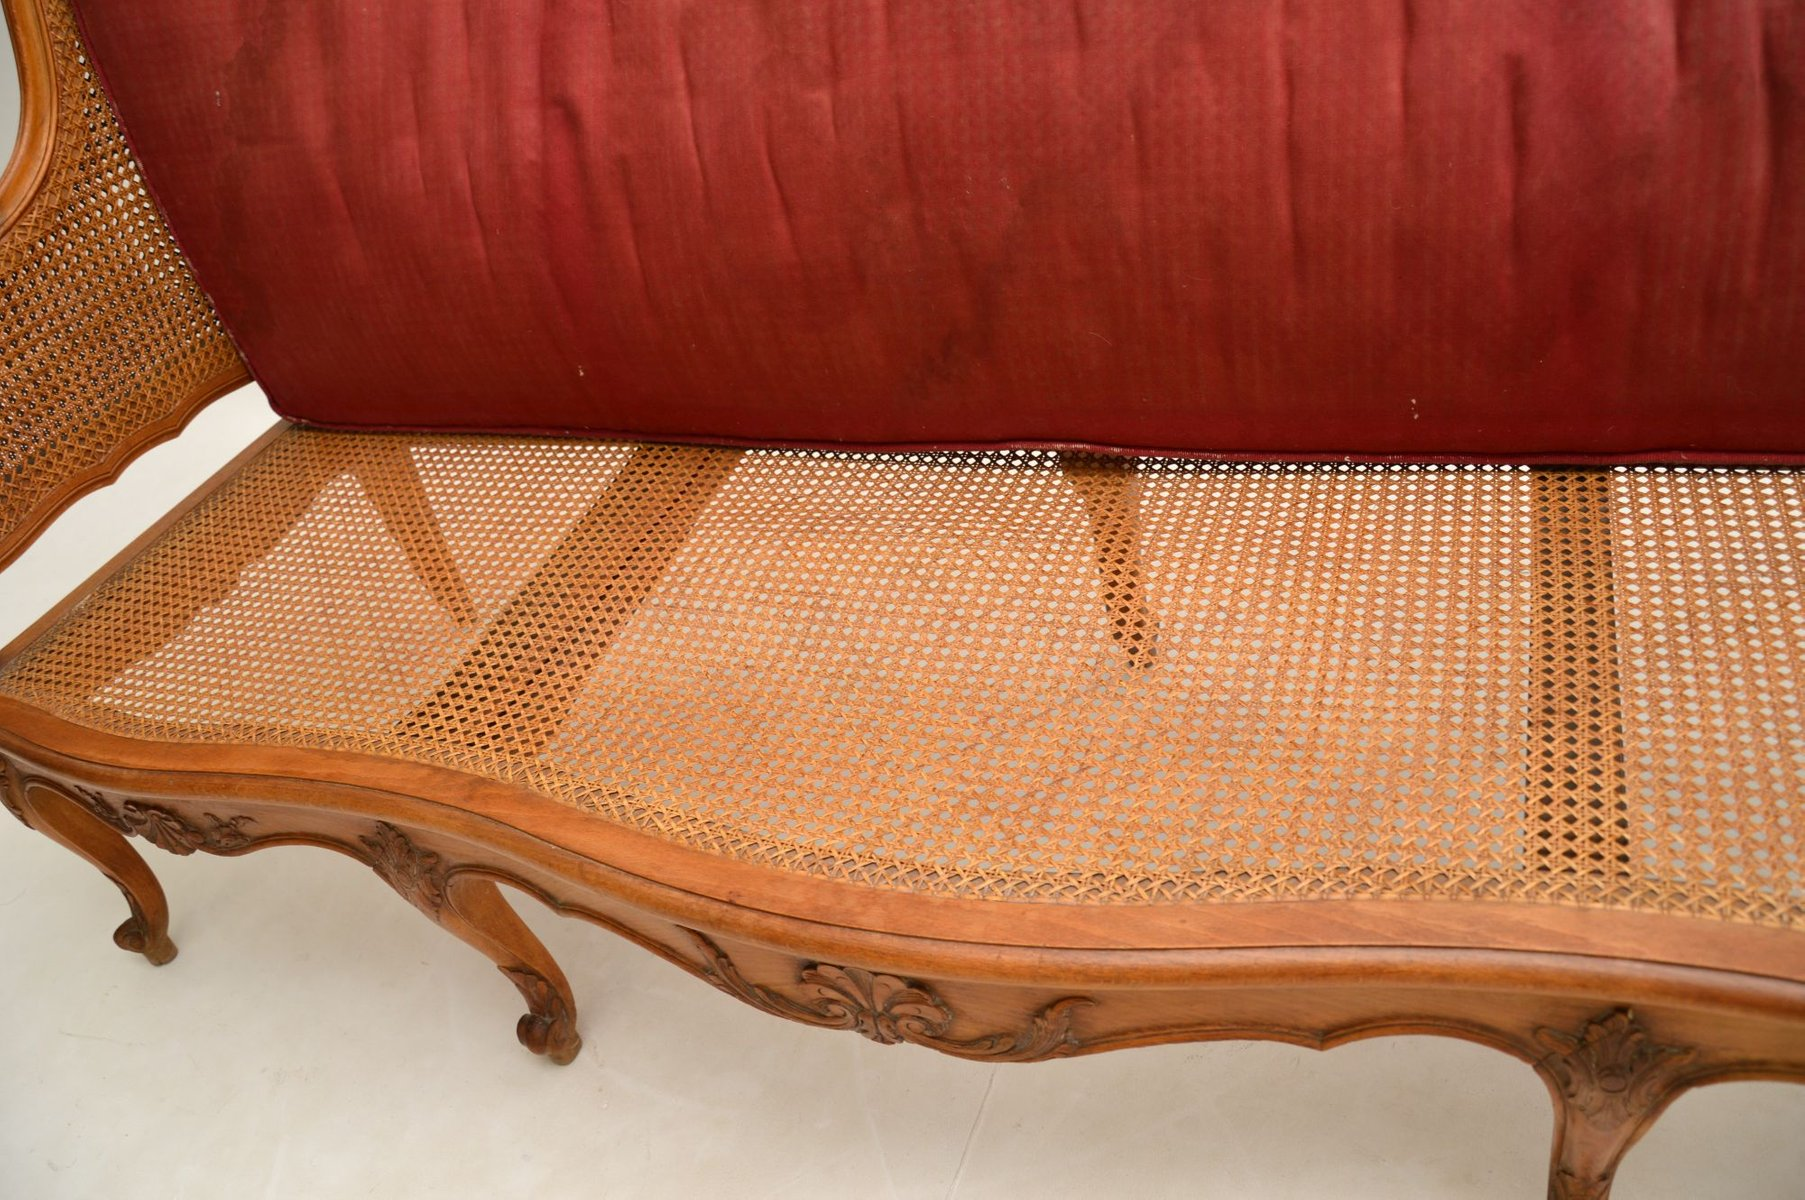 Antique French Carved Walnut Bergere Sofa for sale at Pamono